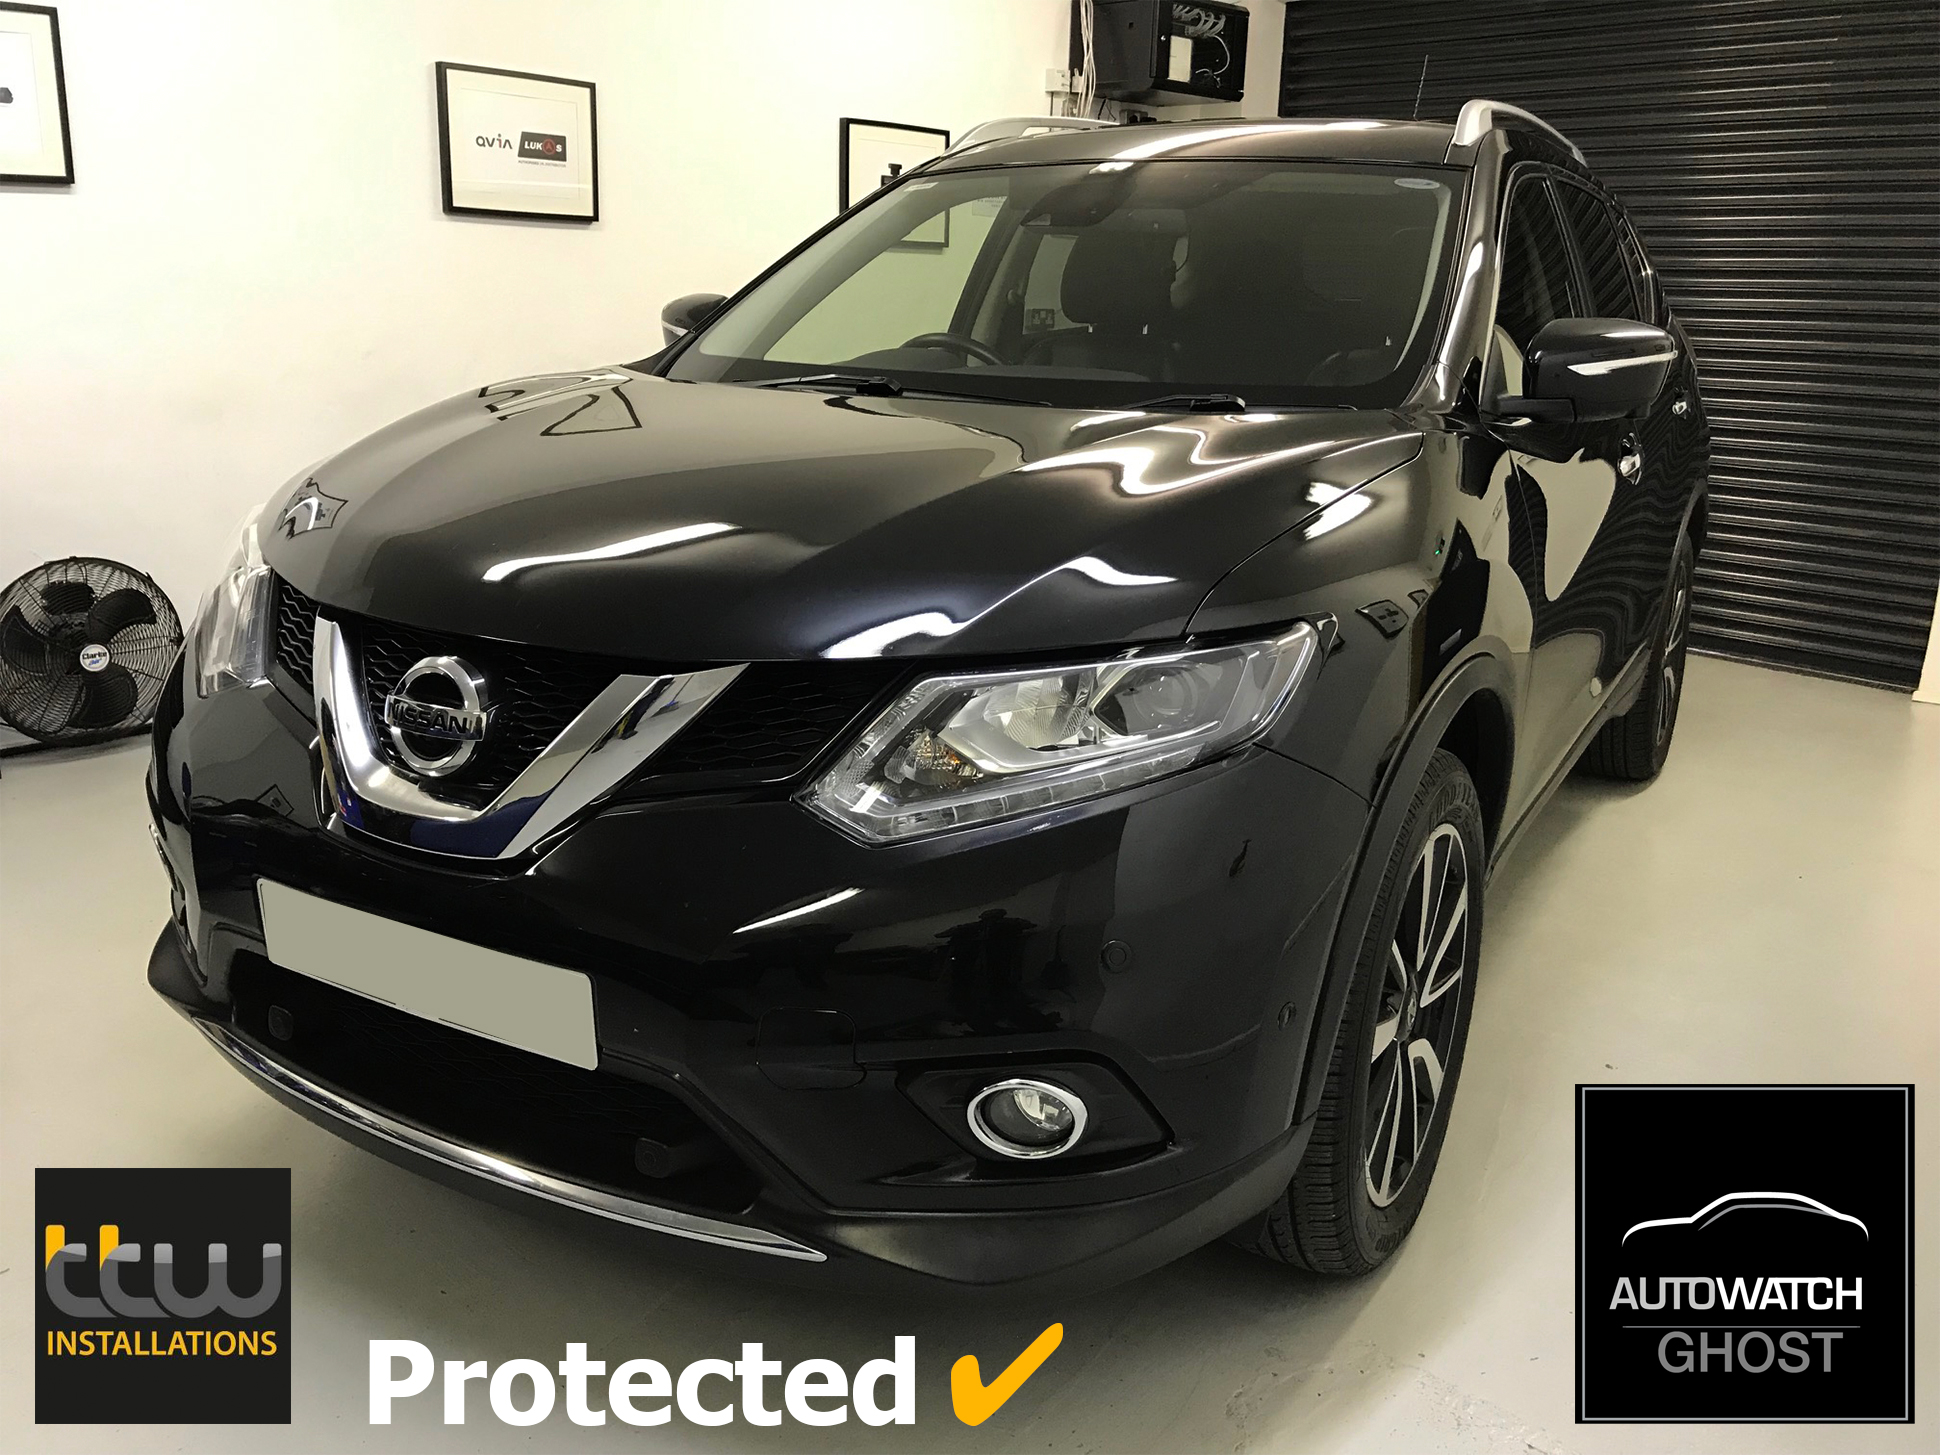 Nissan Autowatch Ghost 2 protected By TTW Installations